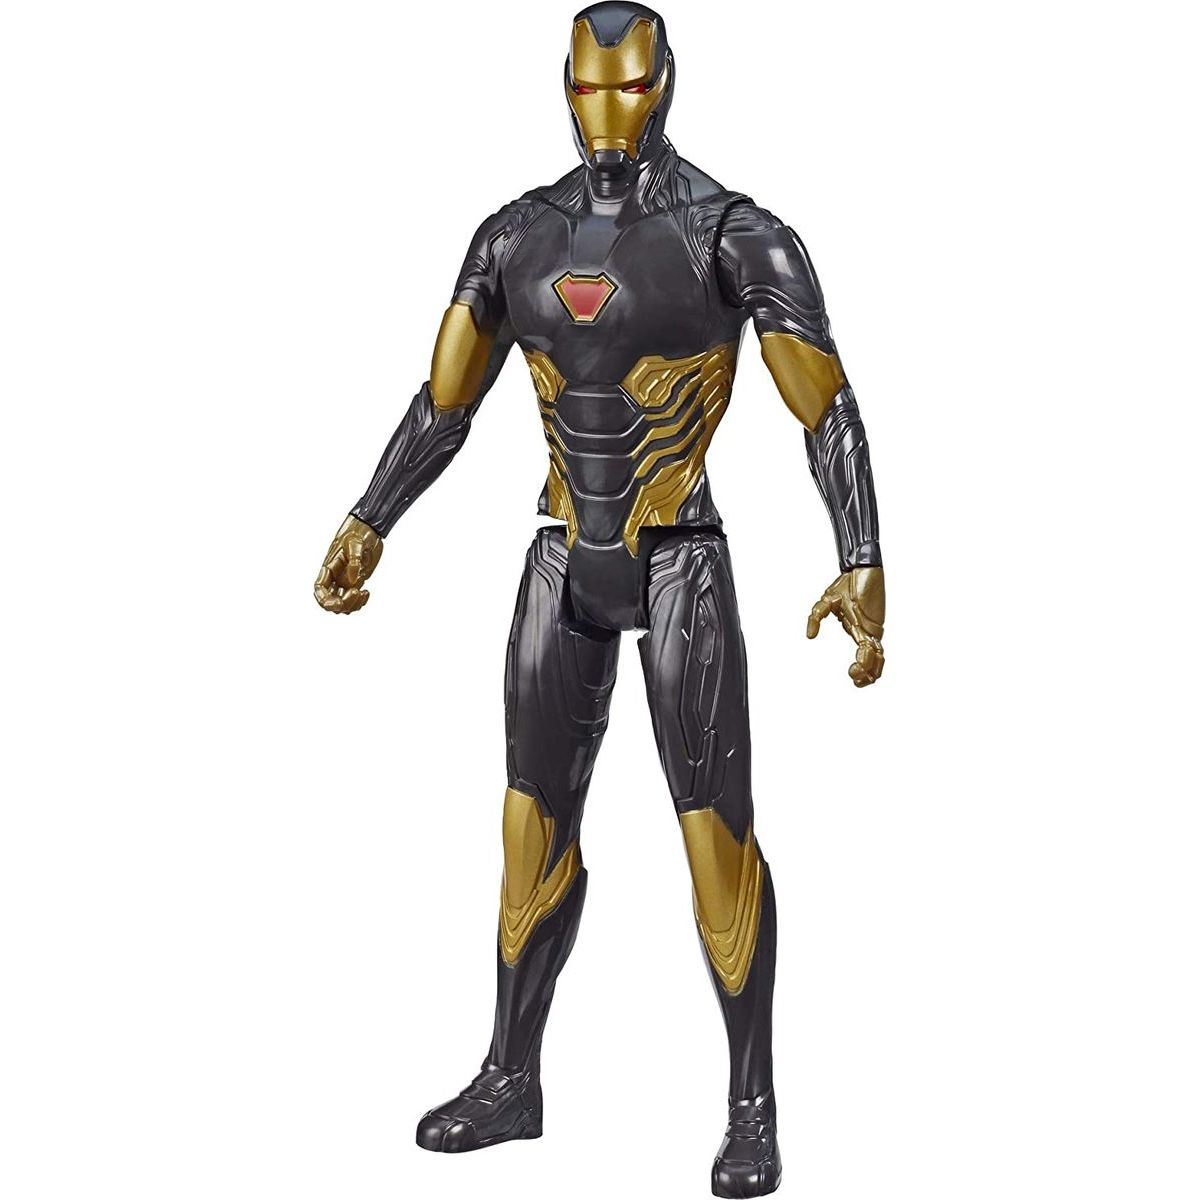 Hasbro Avengers 30 cm figurka Titan hero Innovation Iron Man